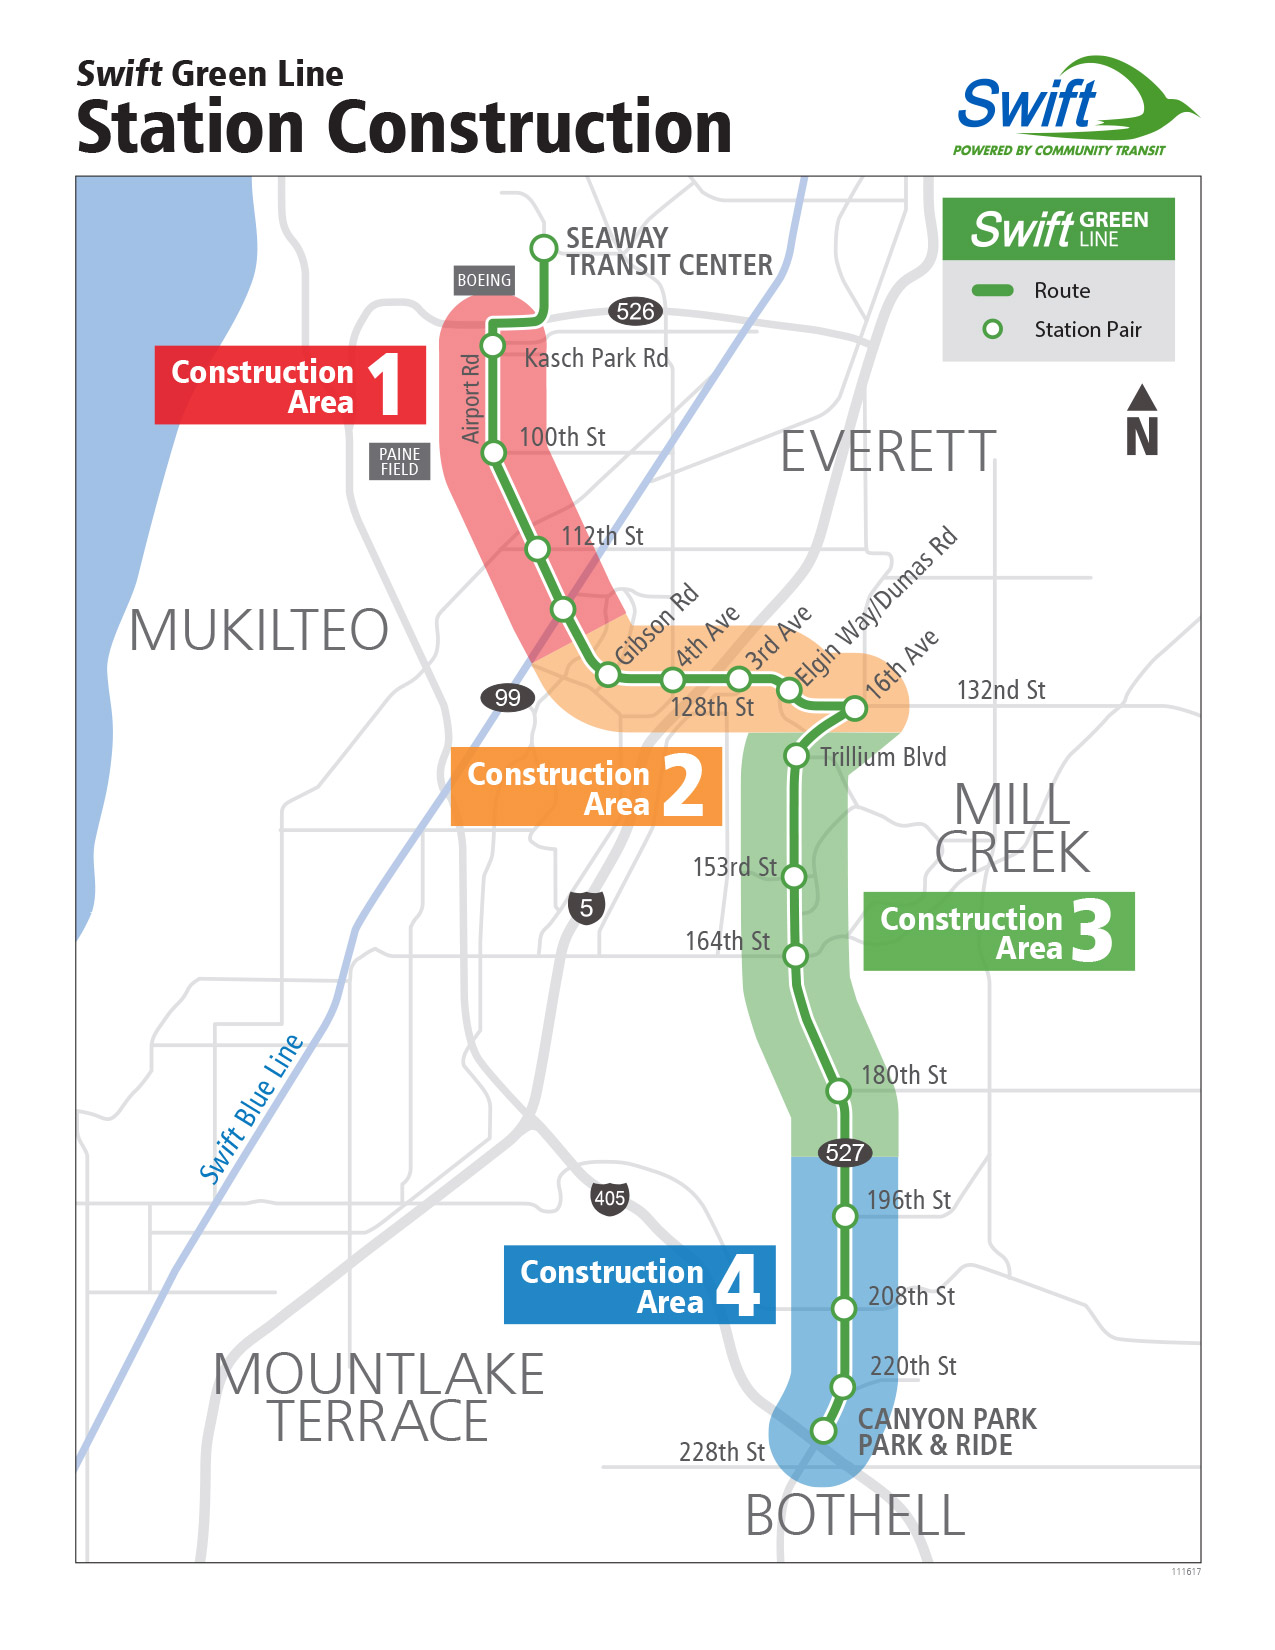 Swift Green Line Construction Zones